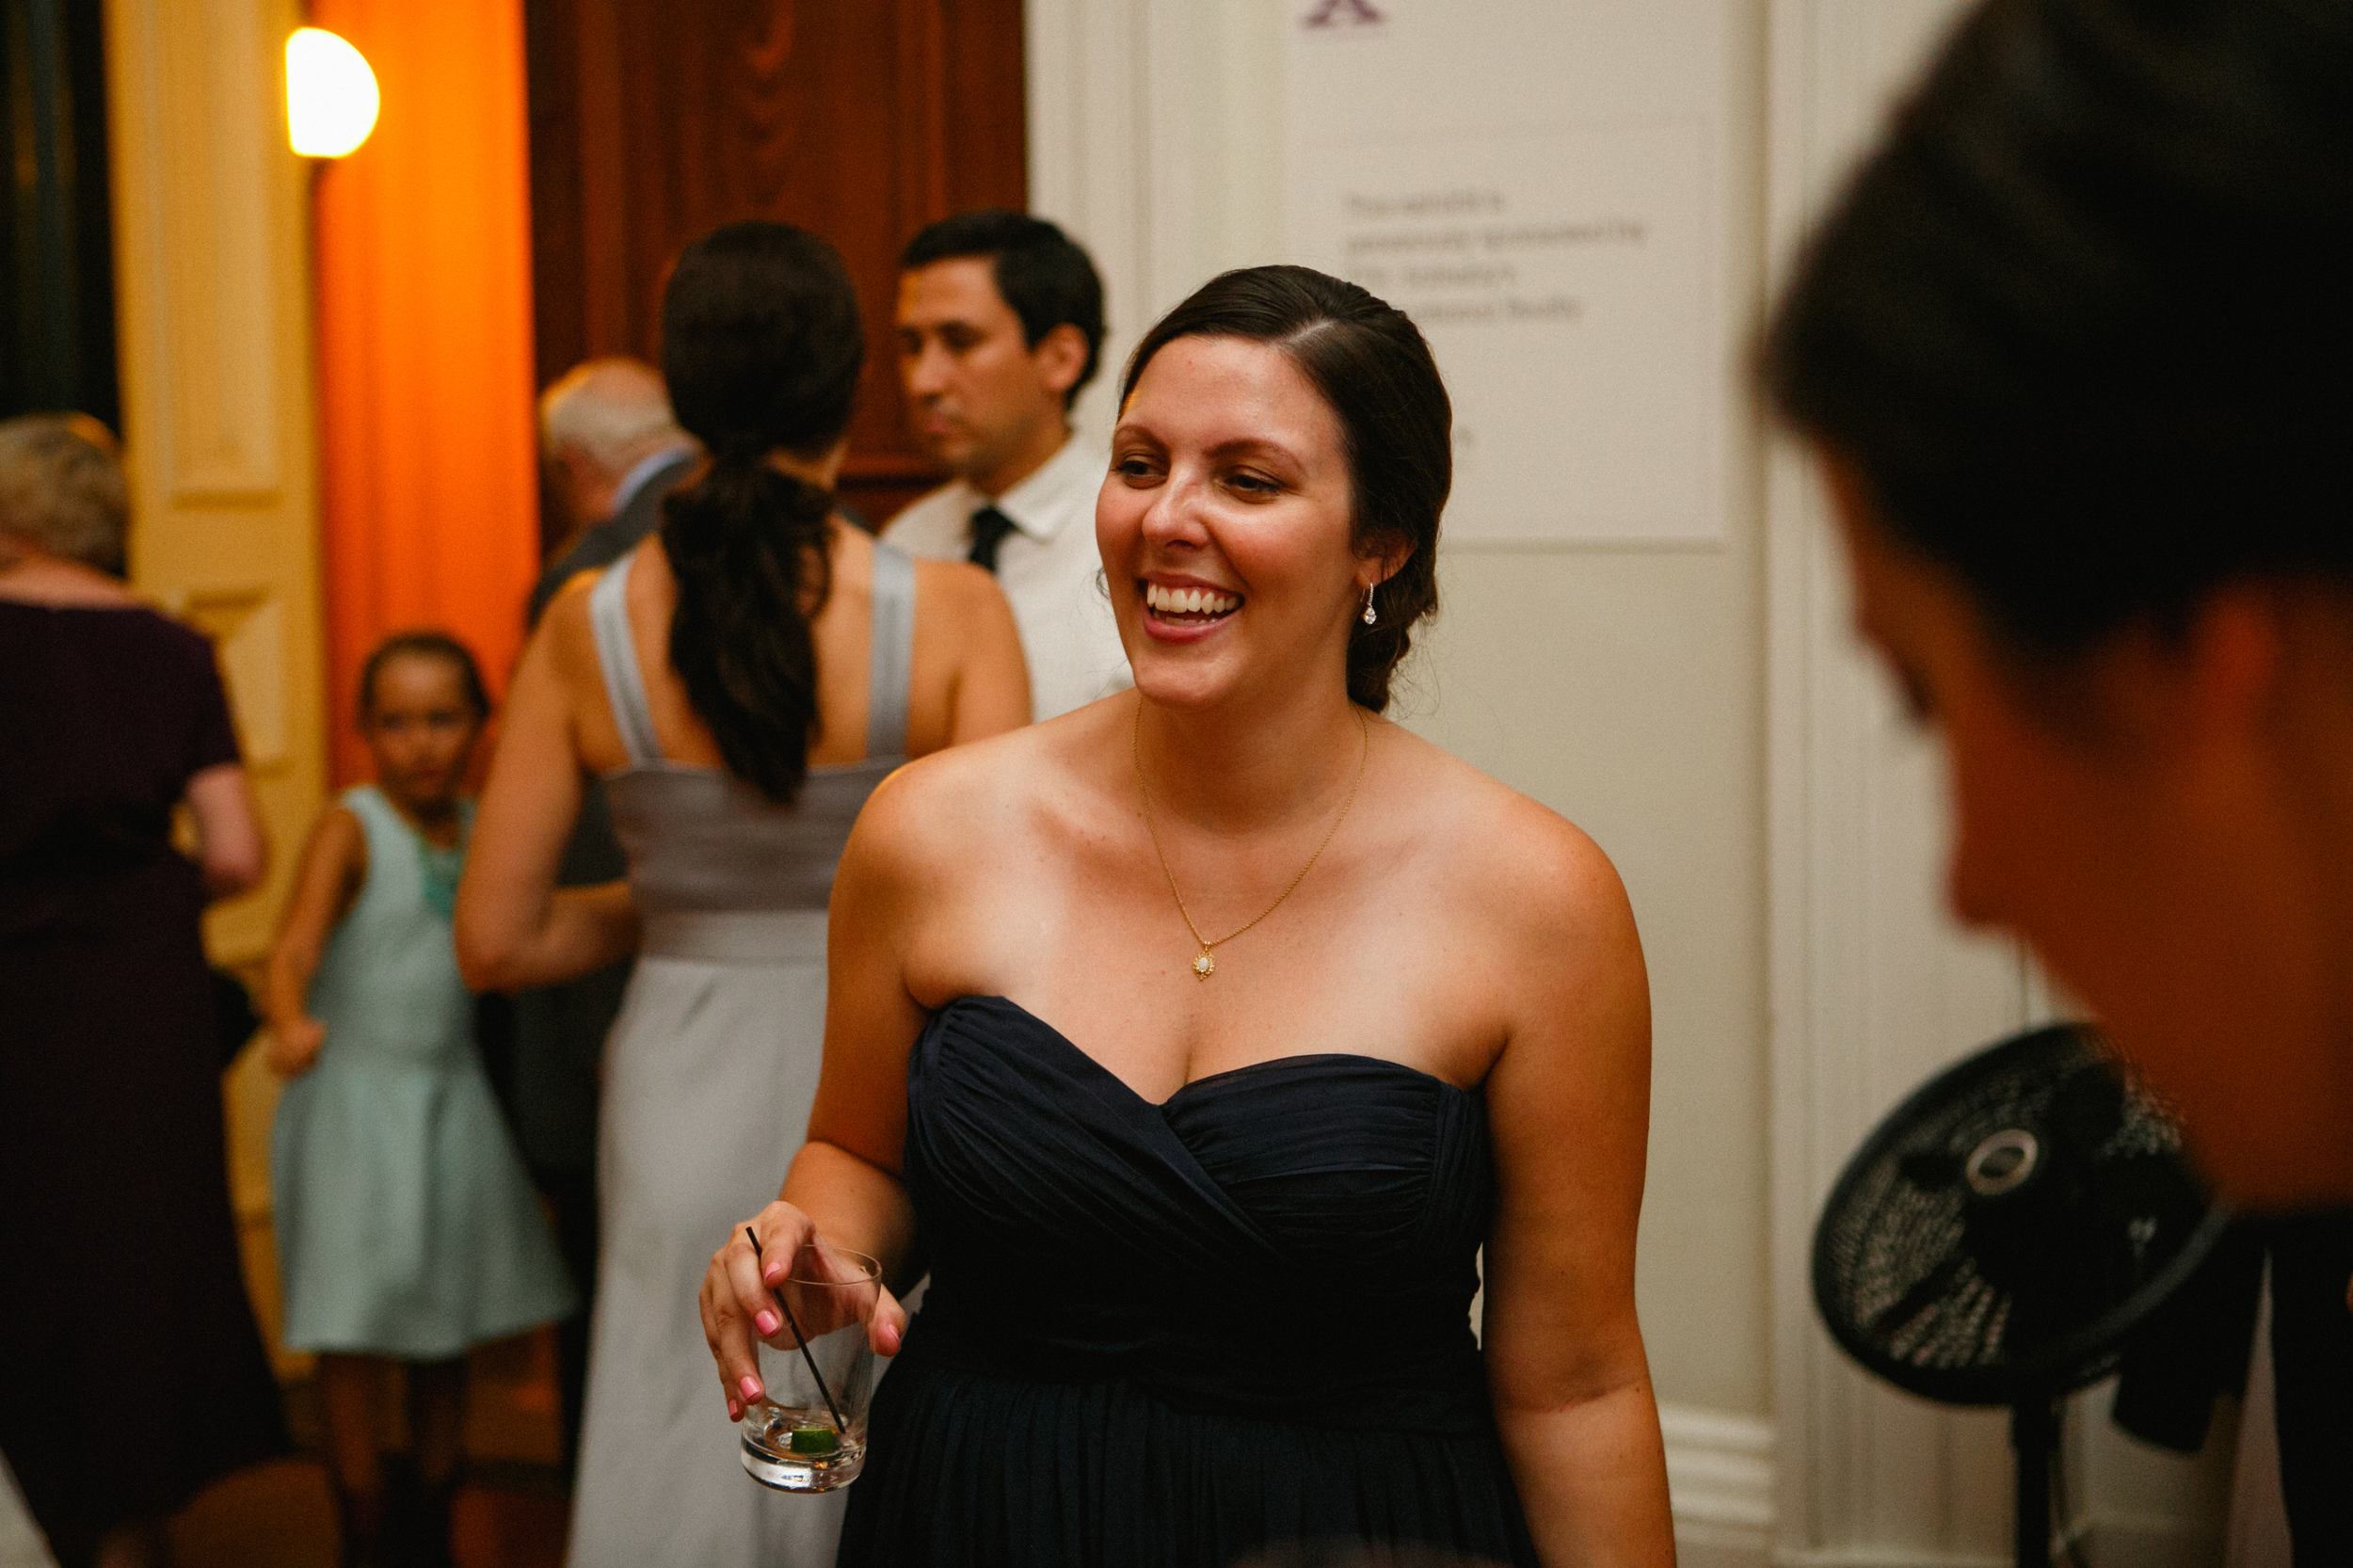 Vness_Photography_Wedding_Photographer_Washington-DC_Fish_Wedding-1086.jpg